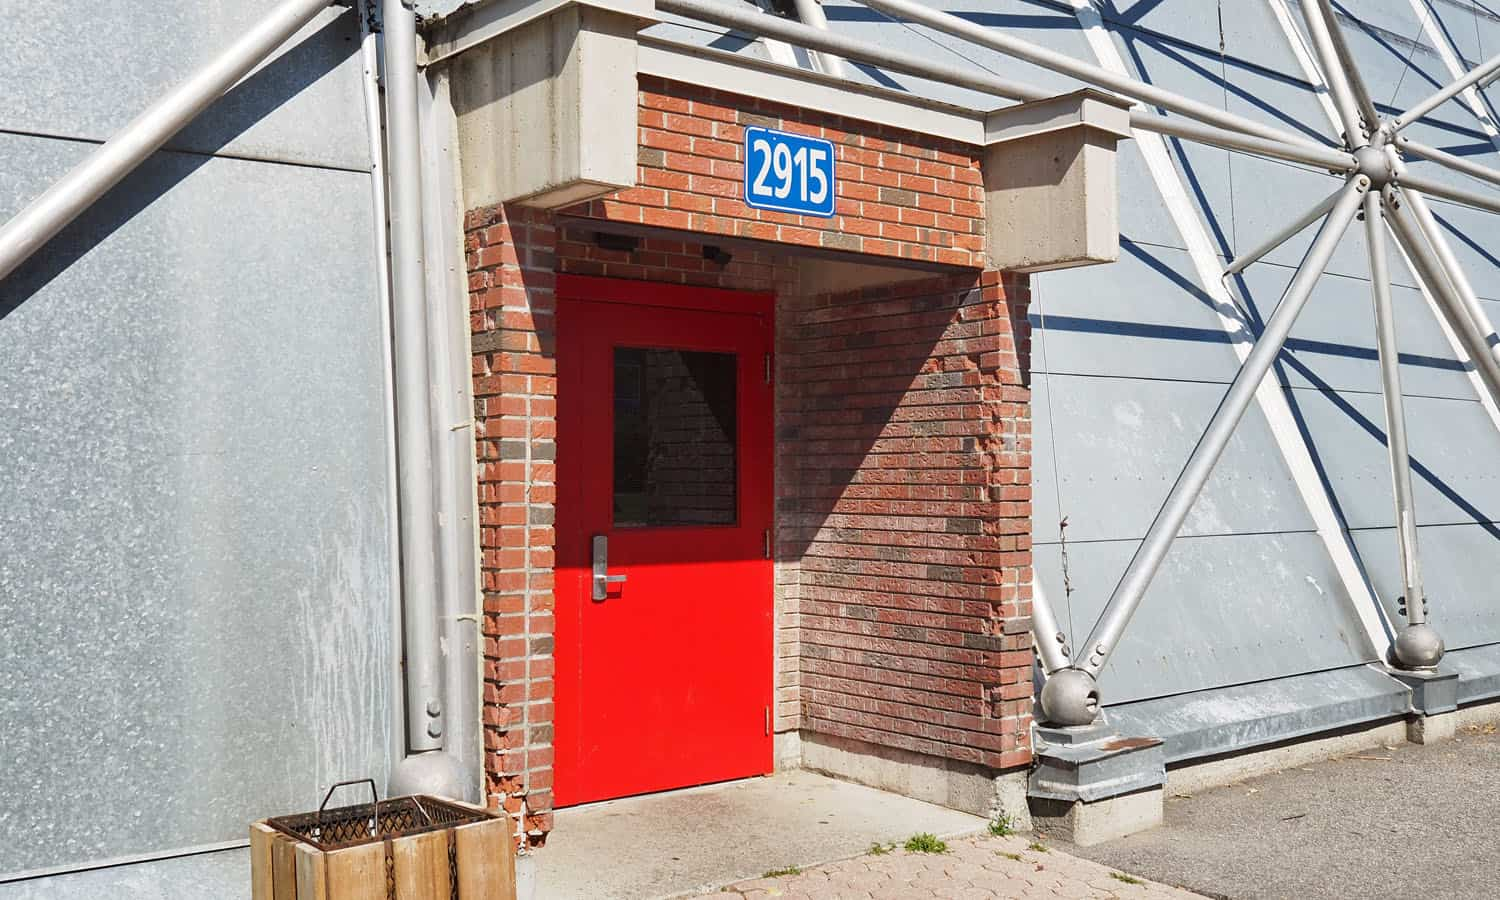 The very modest main entrance into the building